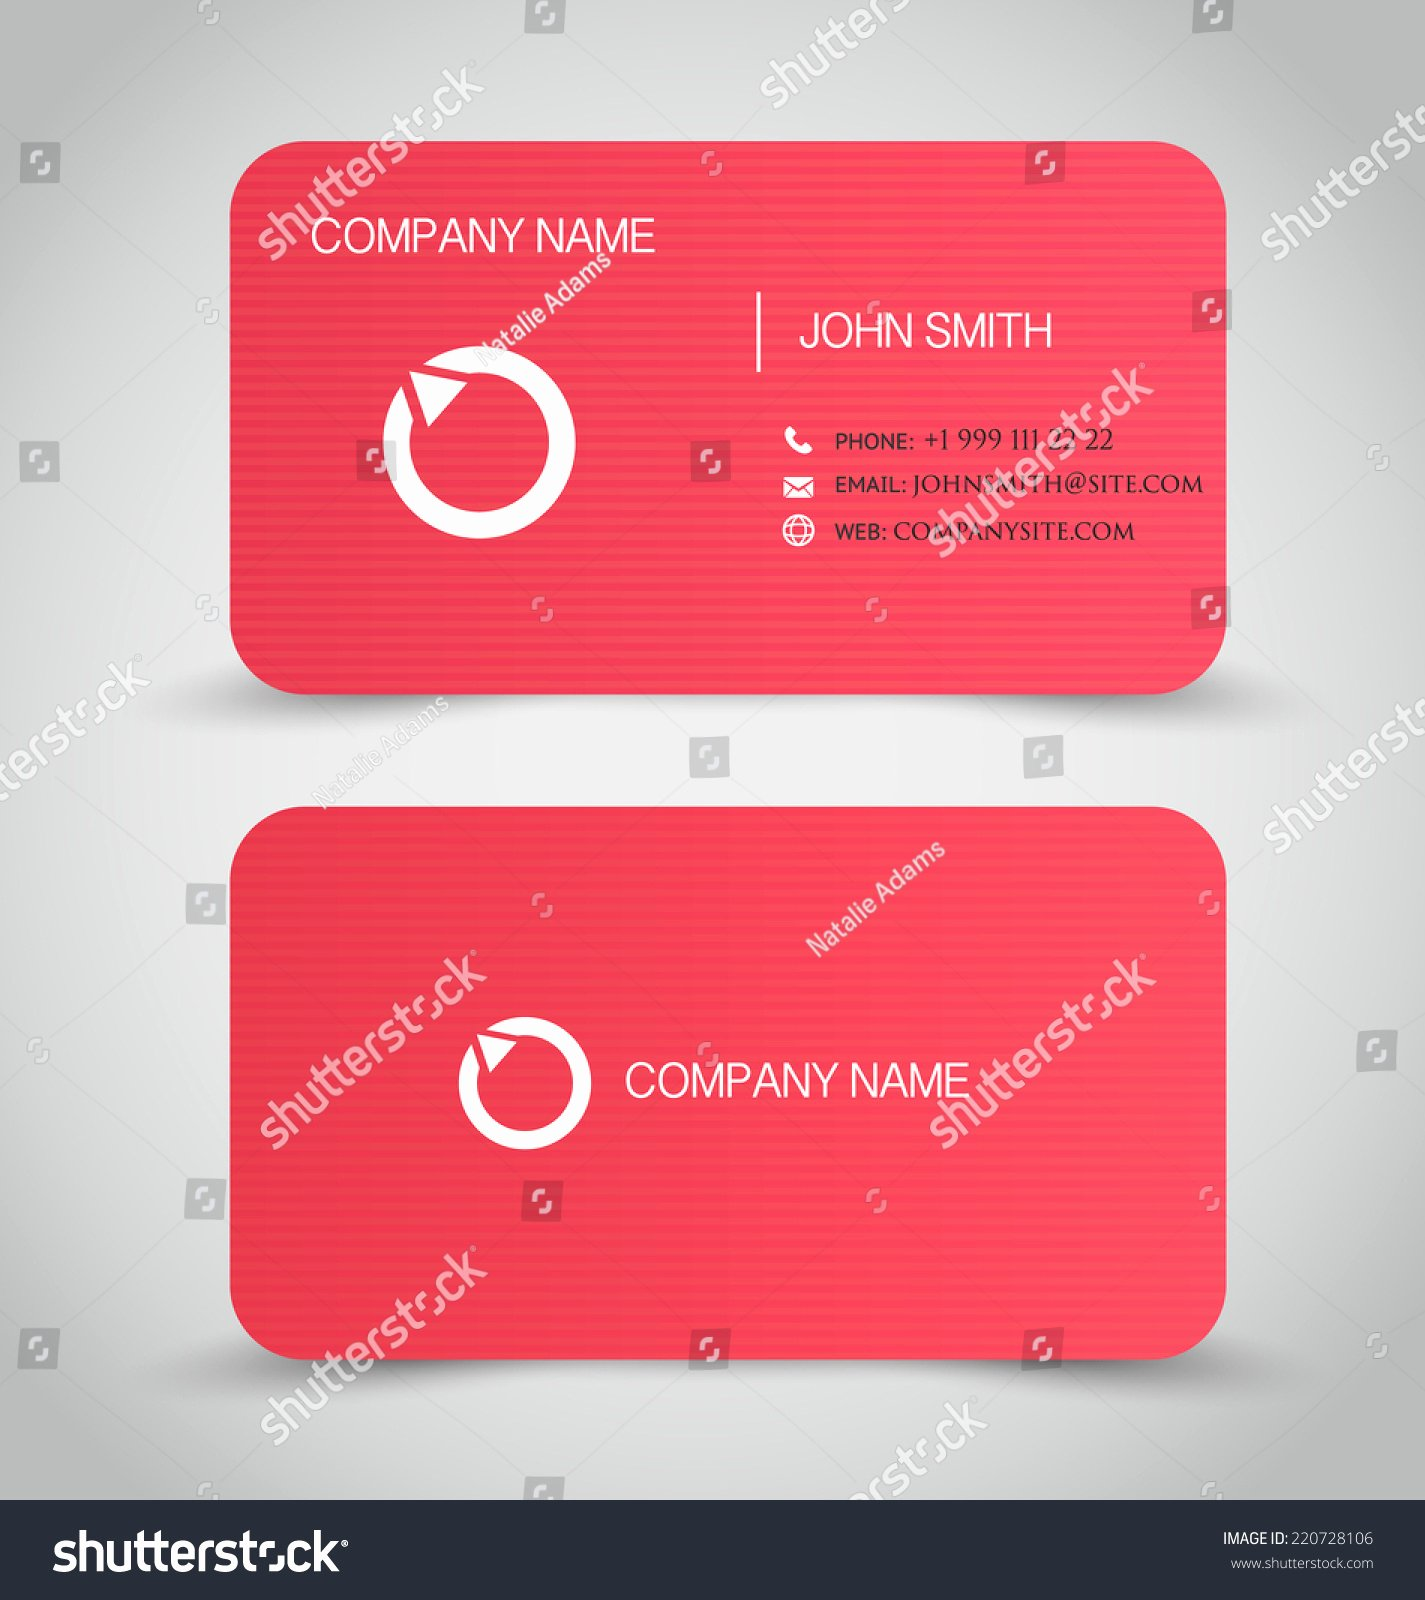 Adams Gift Certificate Template Inspirational Business Card Set Template Red Color Stock Vector